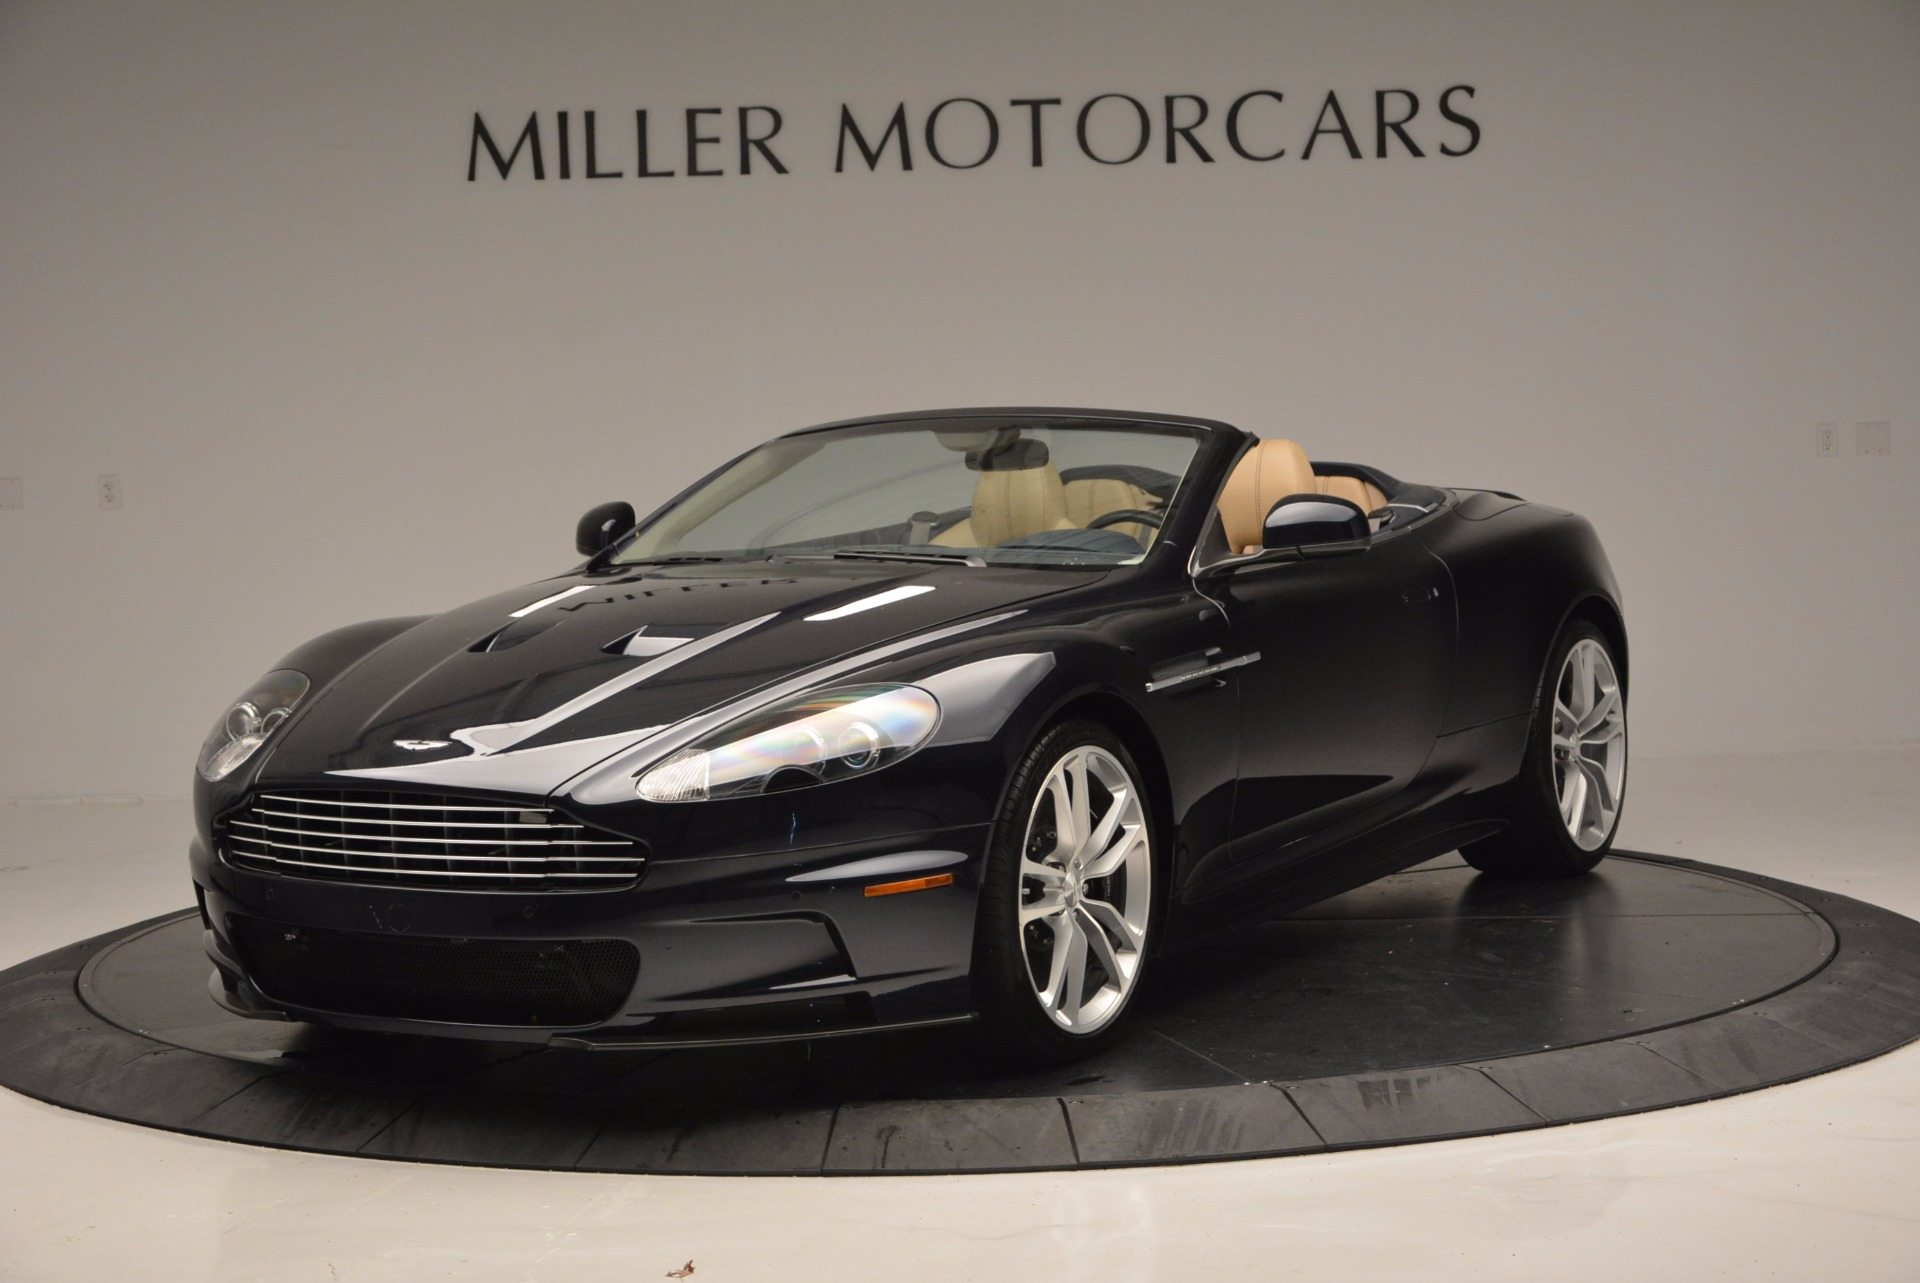 Used 2012 Aston Martin DBS Volante for sale Sold at Aston Martin of Greenwich in Greenwich CT 06830 1